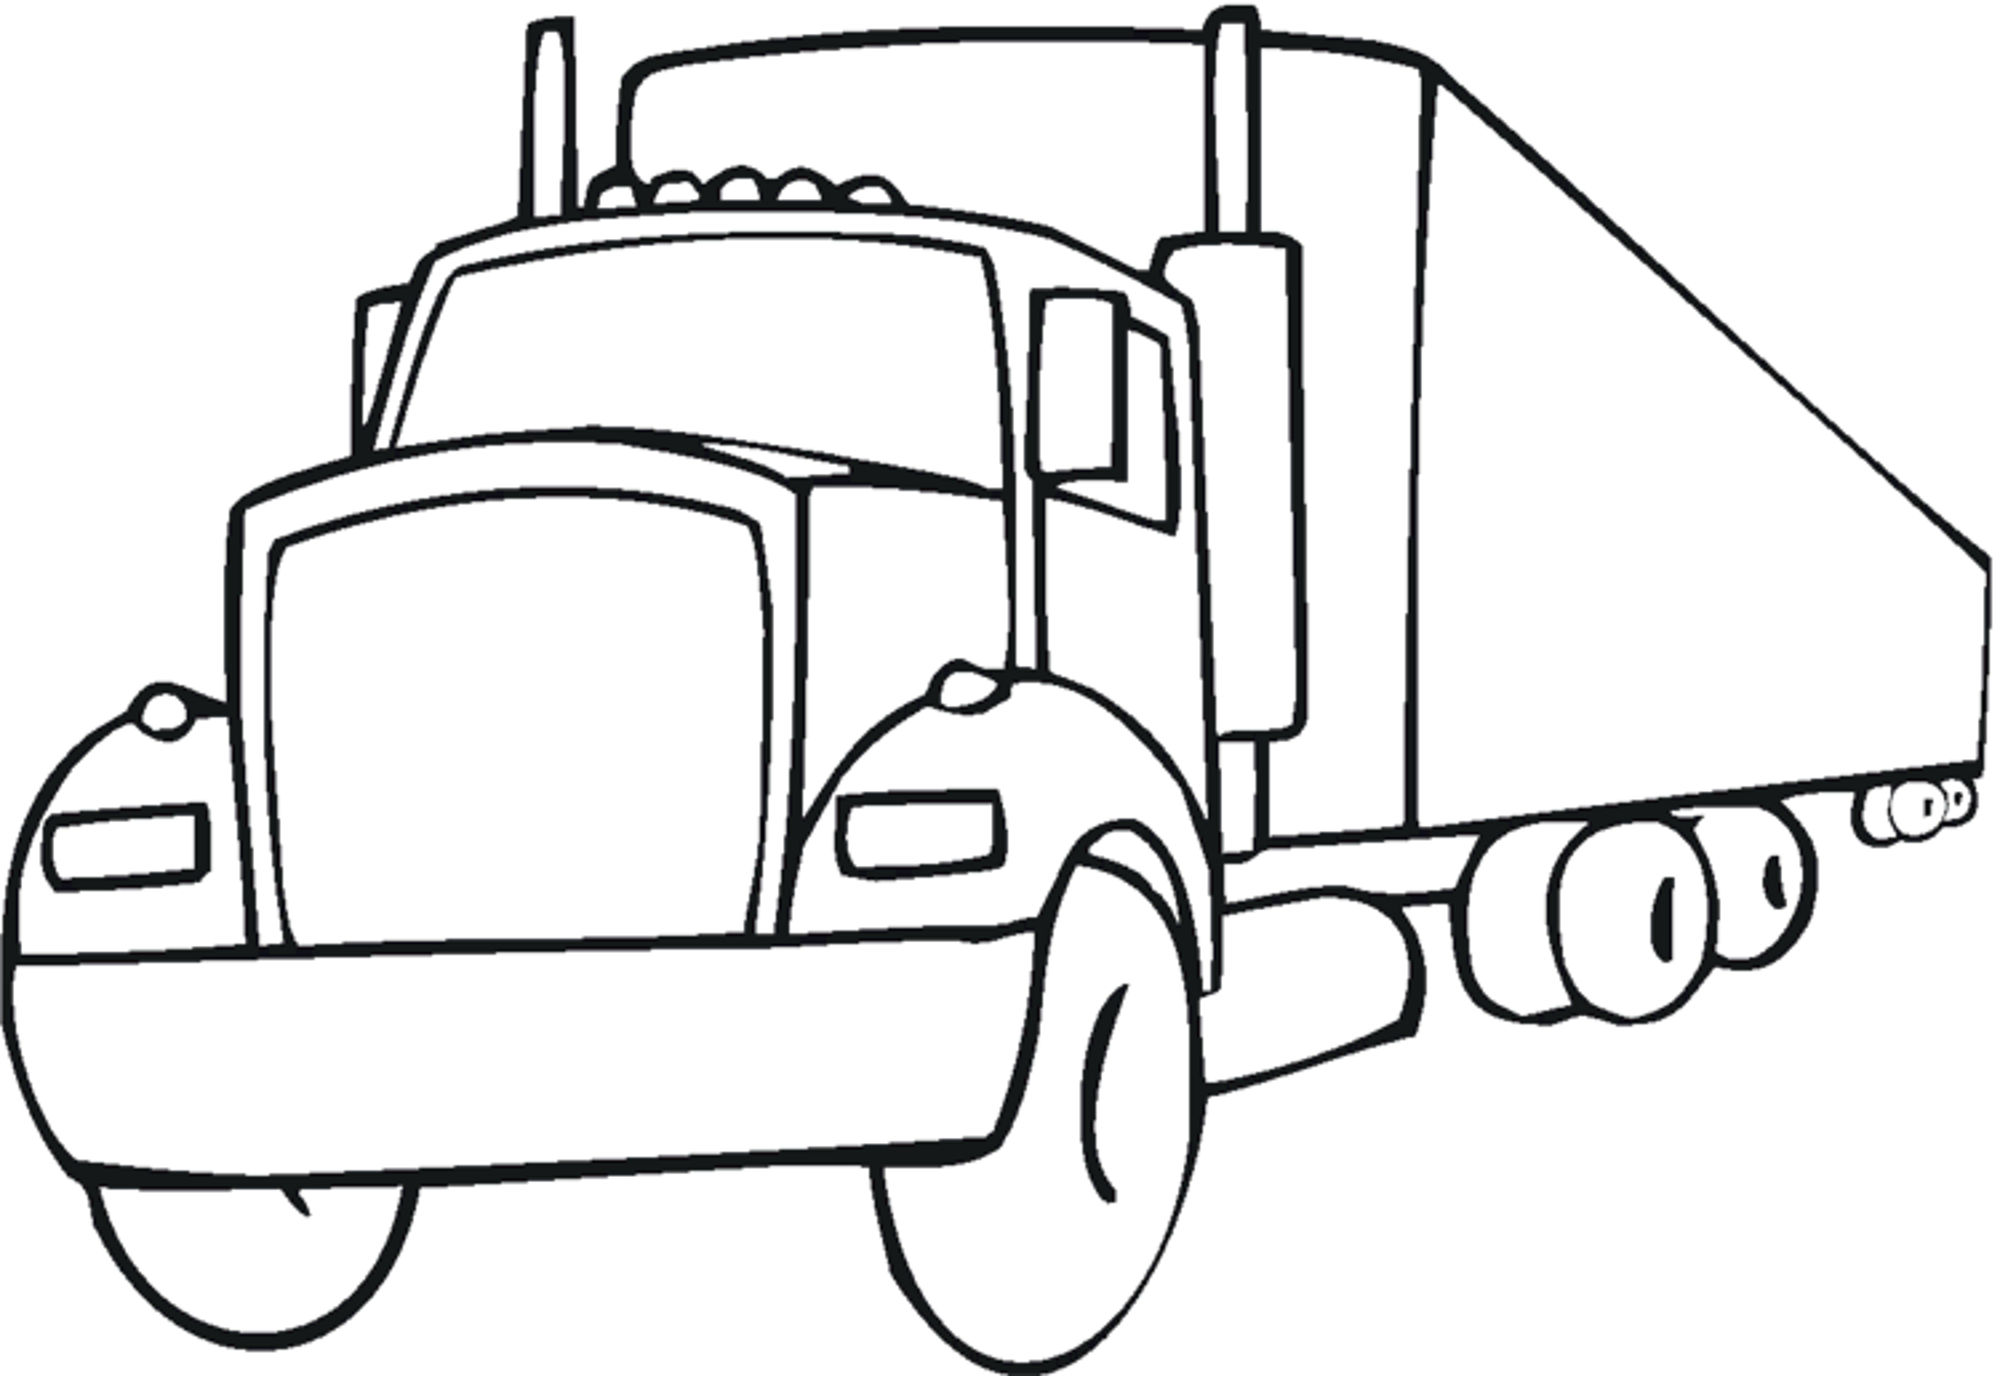 easy fire truck coloring pages - Coloring Pages Of Trucks